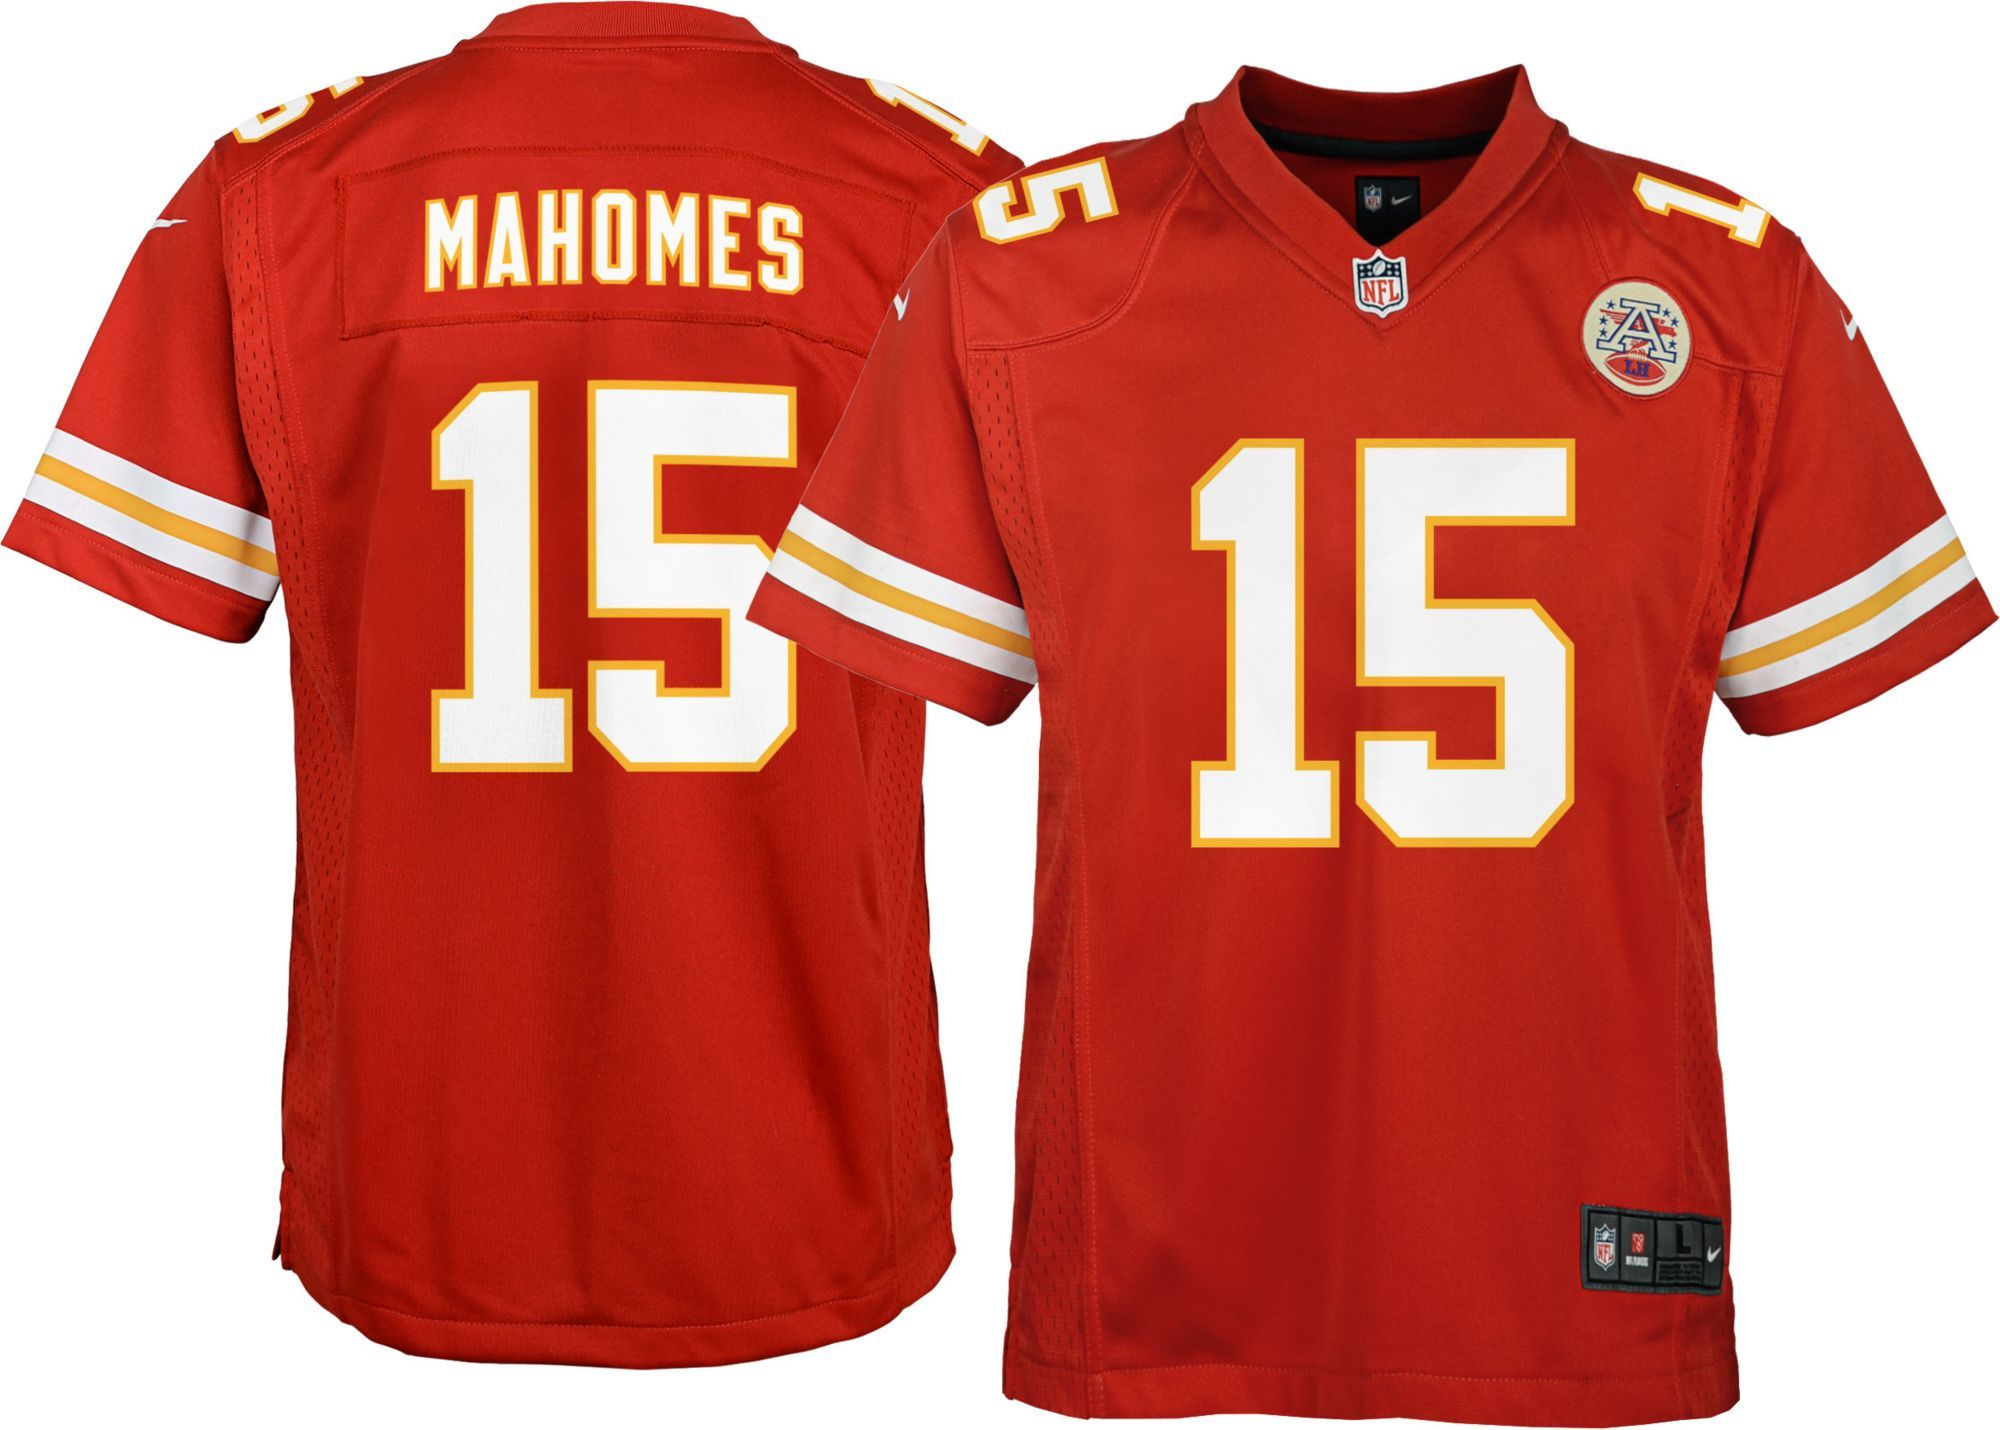 636a50a6c Nike Youth Home Game Jersey Kansas City Patrick Mahomes  15 in 2019 ...